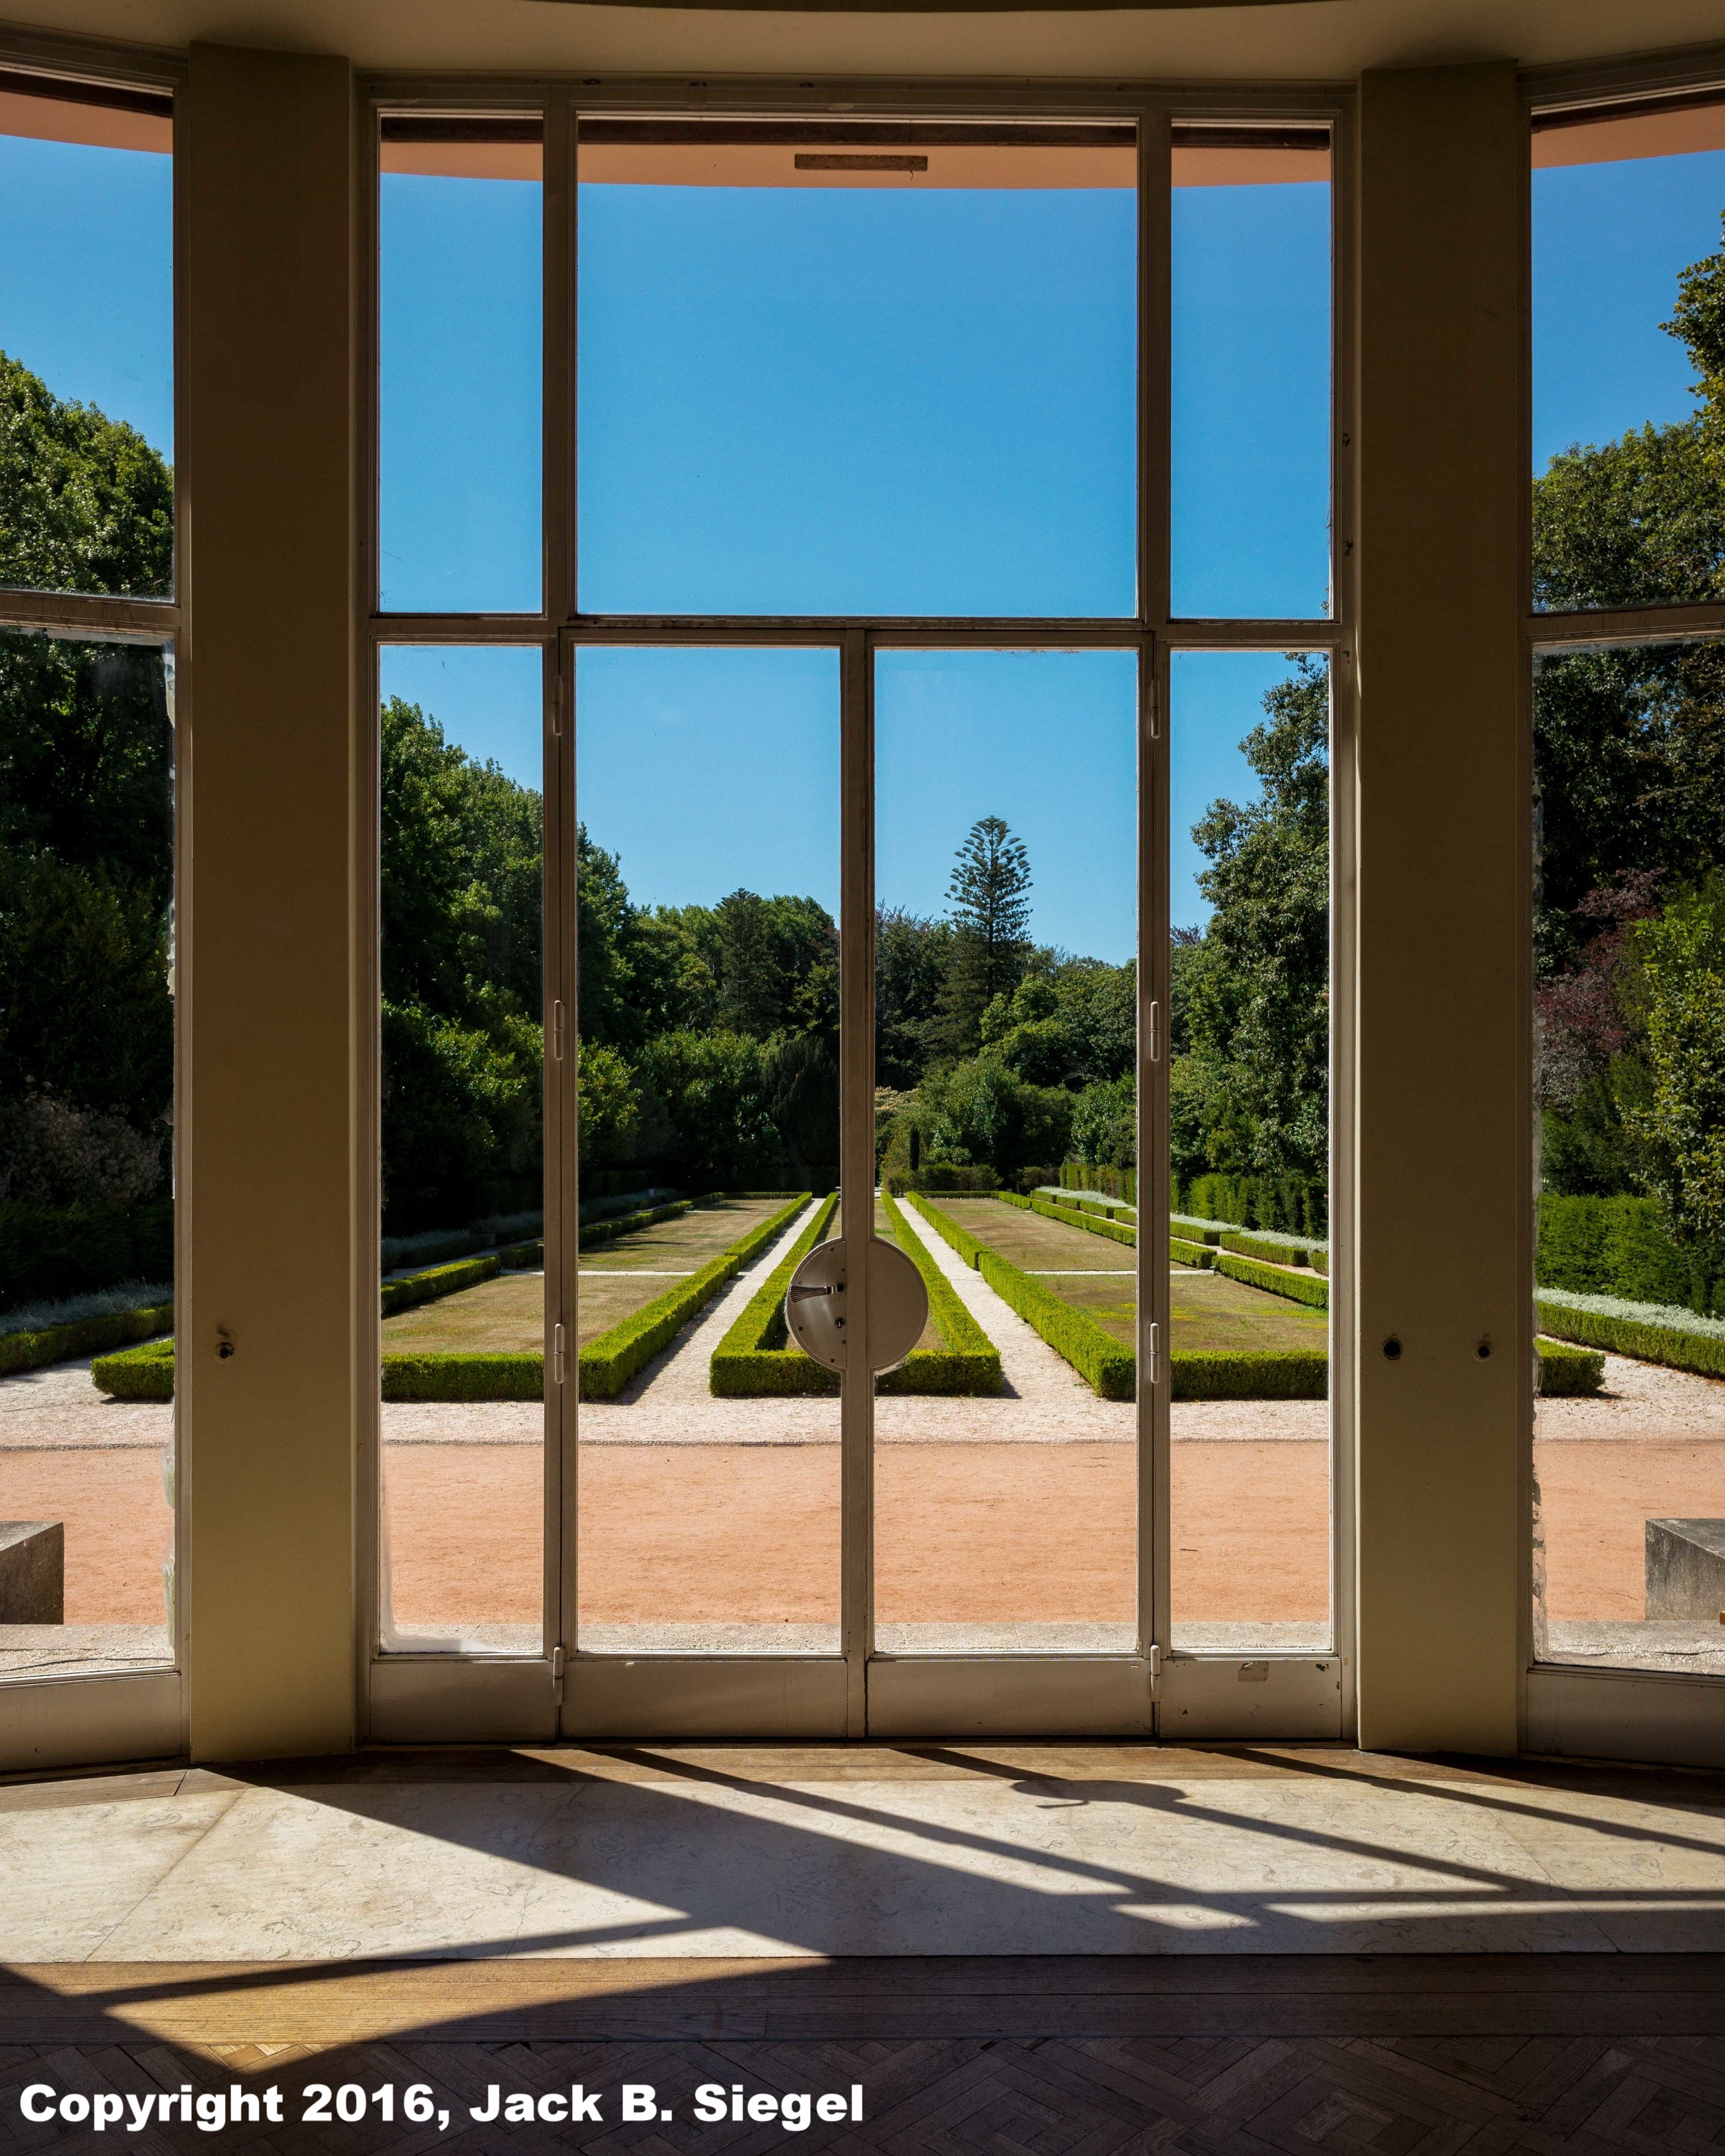 Looking Out from the Case de Serralves